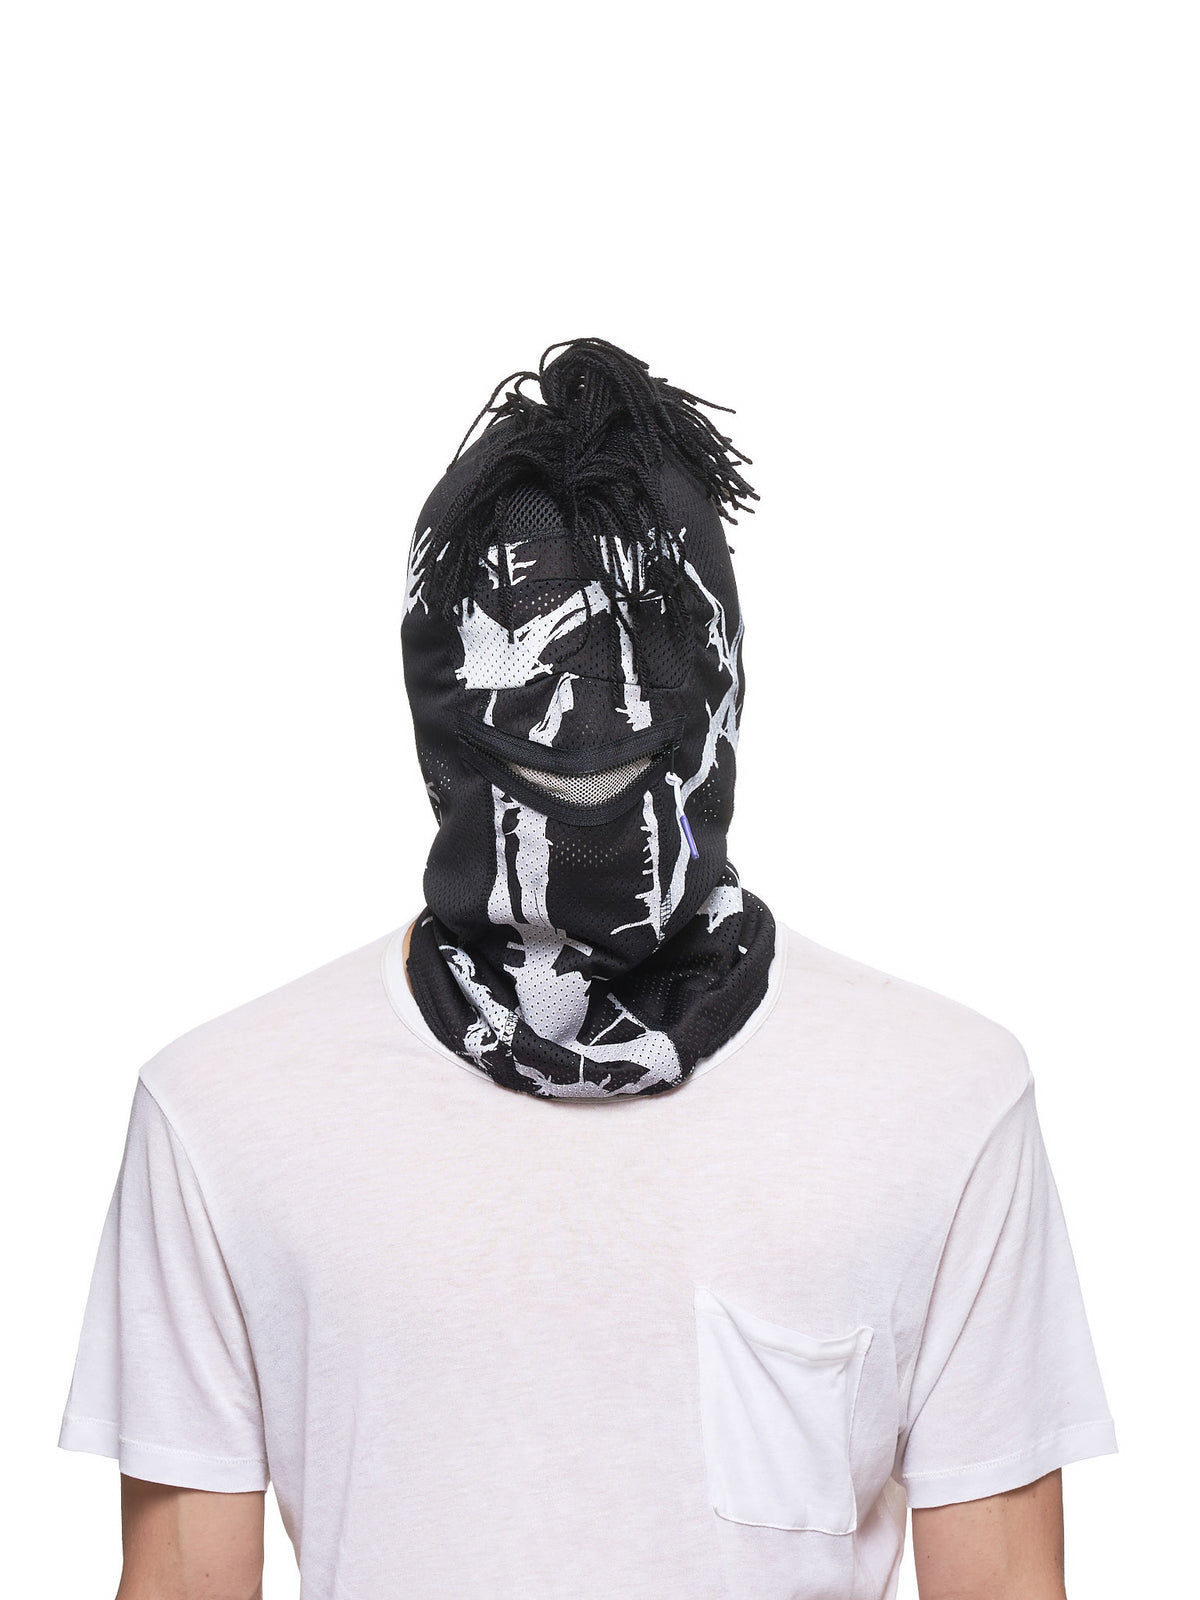 Mohawk Mask (NN14-ACC02-BLACK)